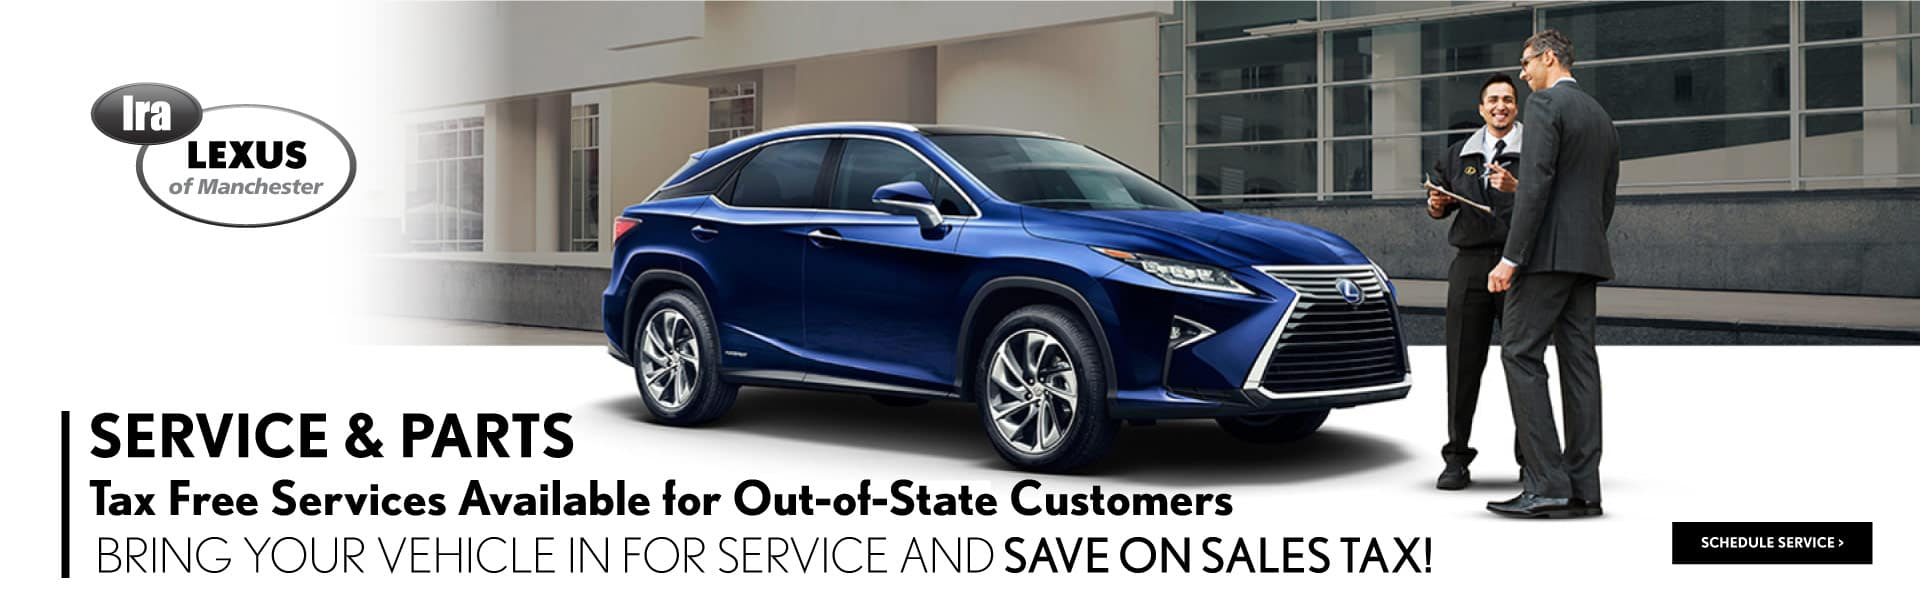 banner_lexus_manchester_tax-savings_service